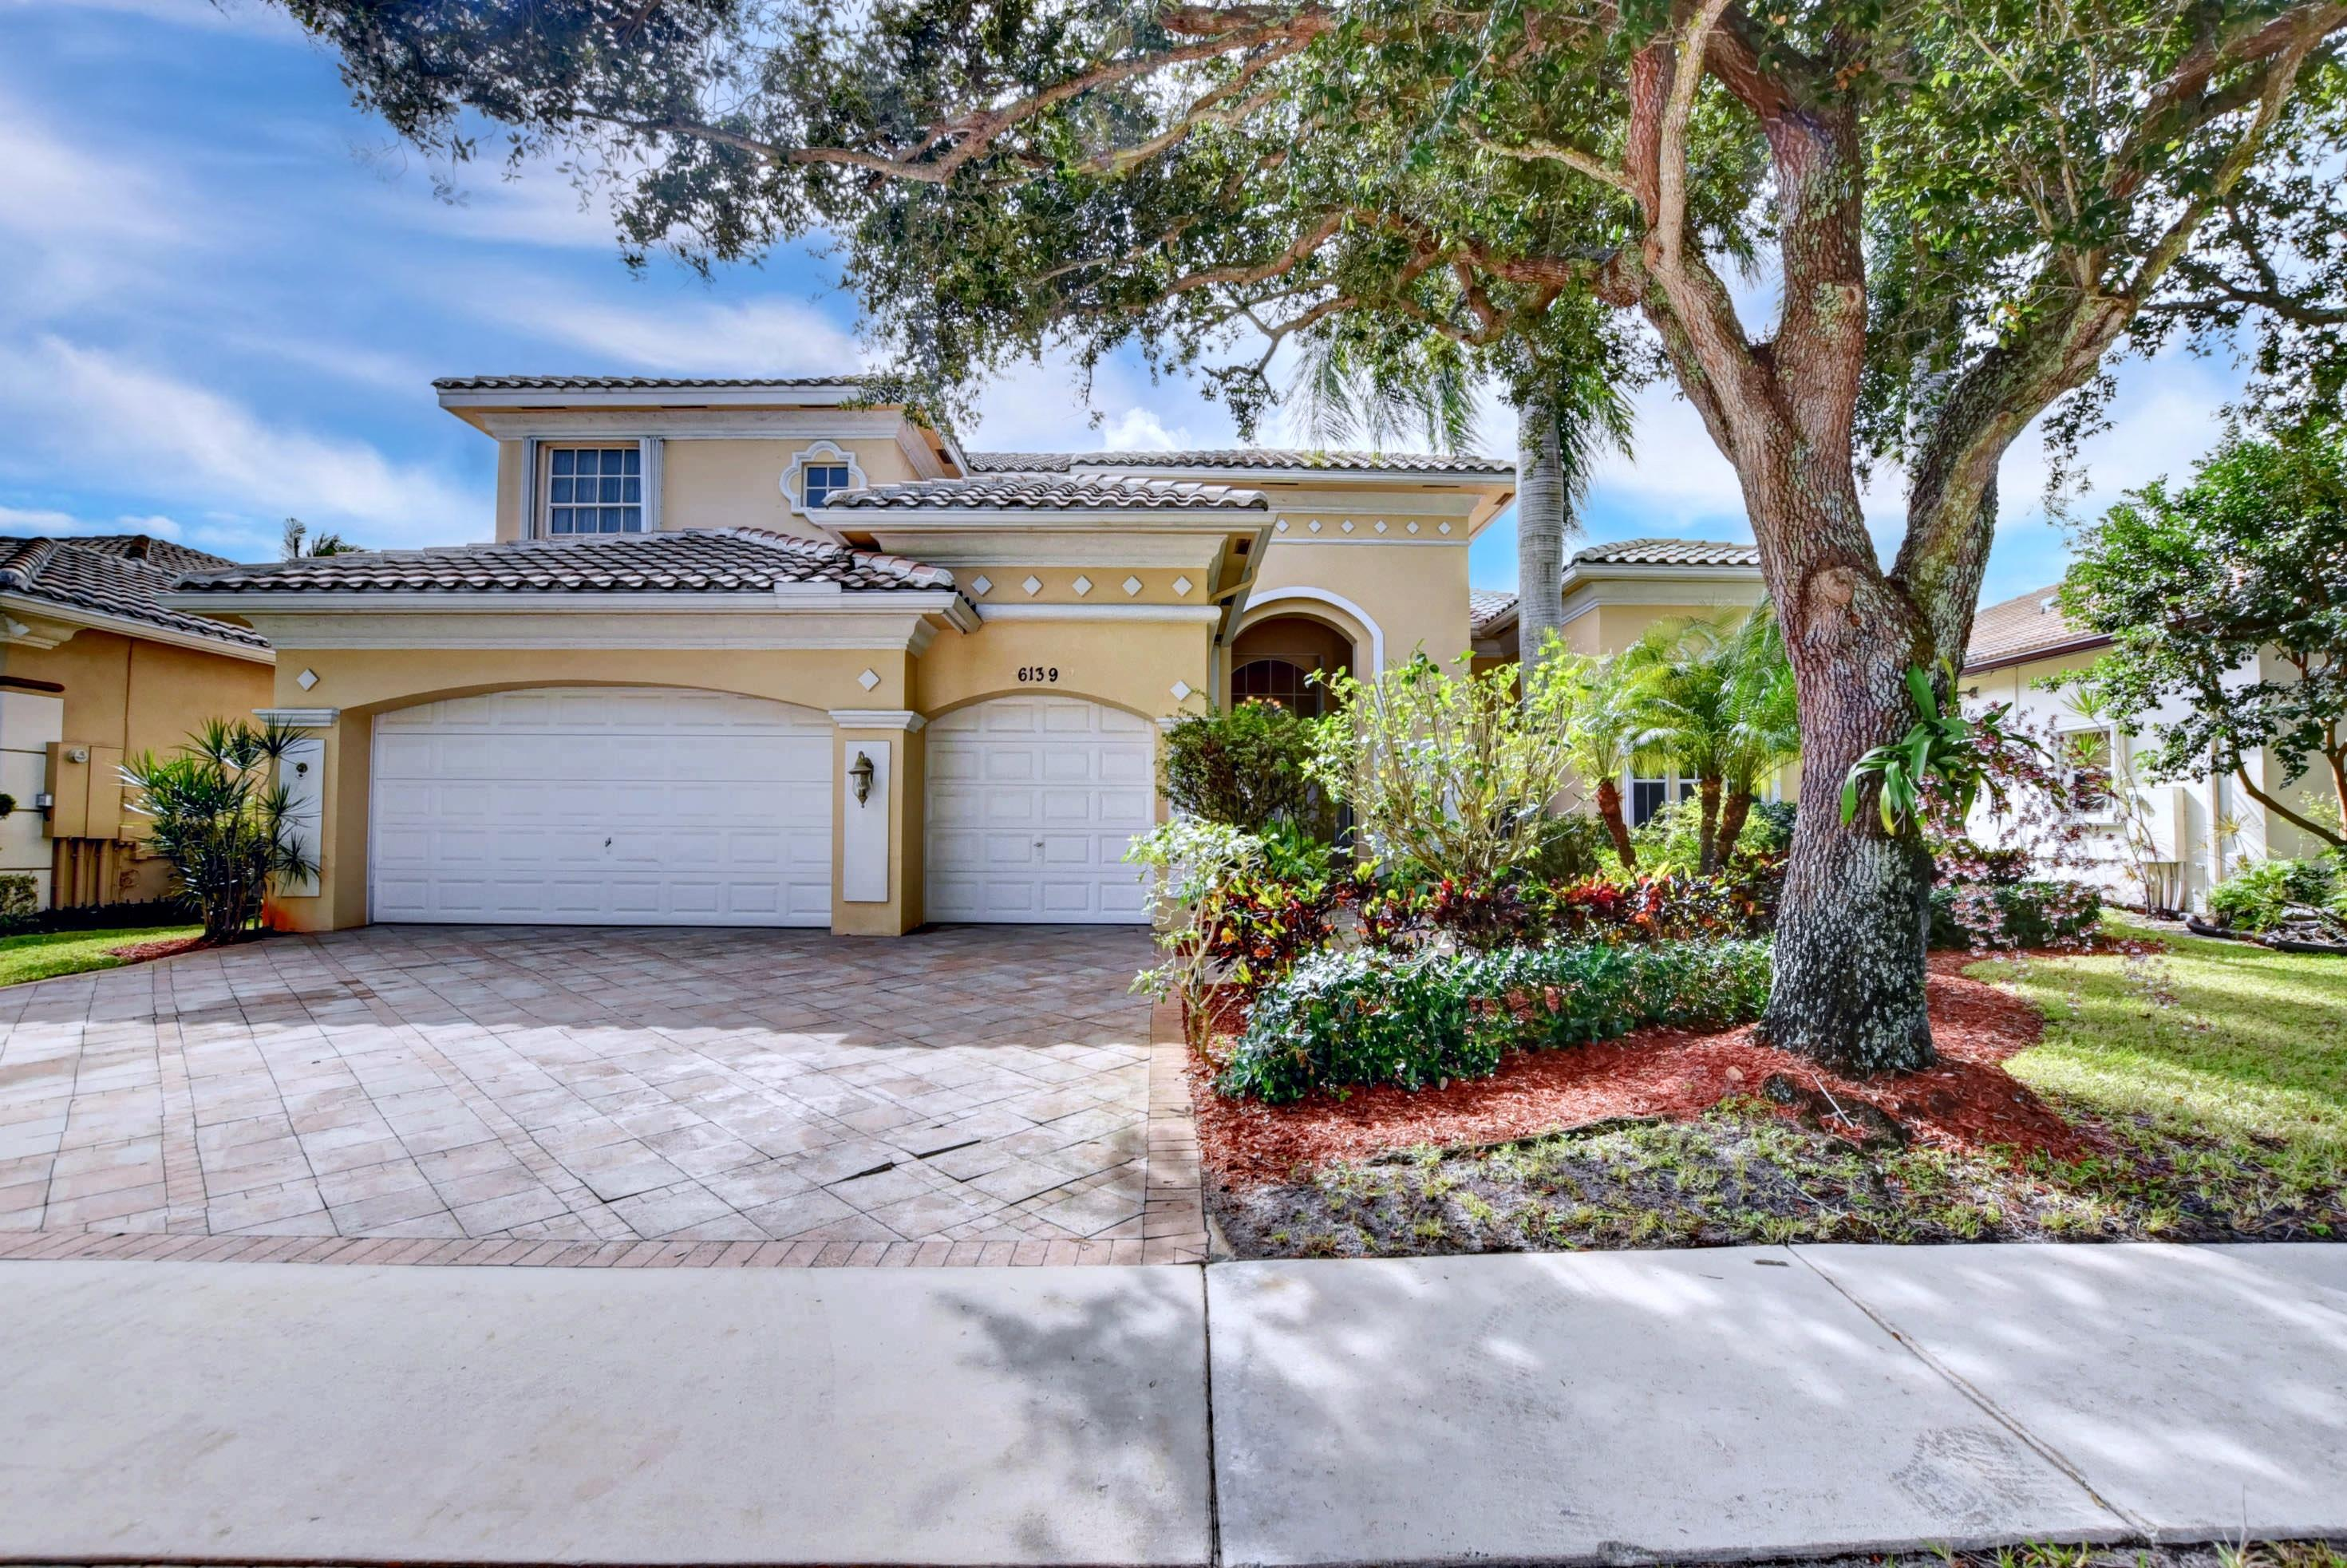 Photo of 6139 Via Venetia S, Delray Beach, FL 33484